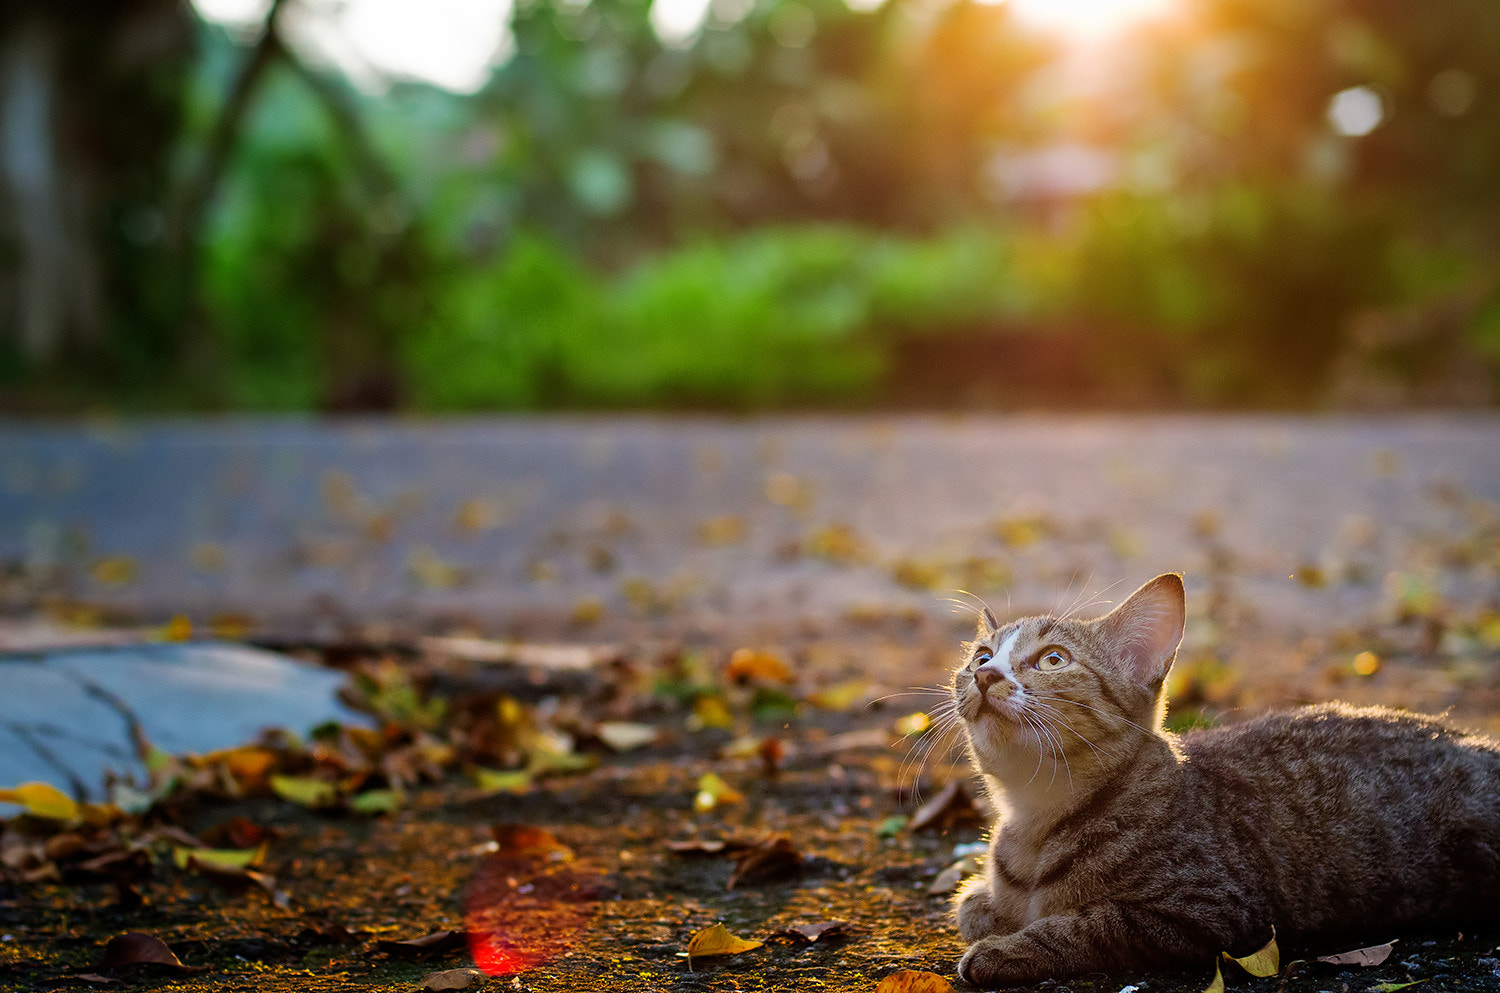 Photograph miow...miow by iiz Kot on 500px